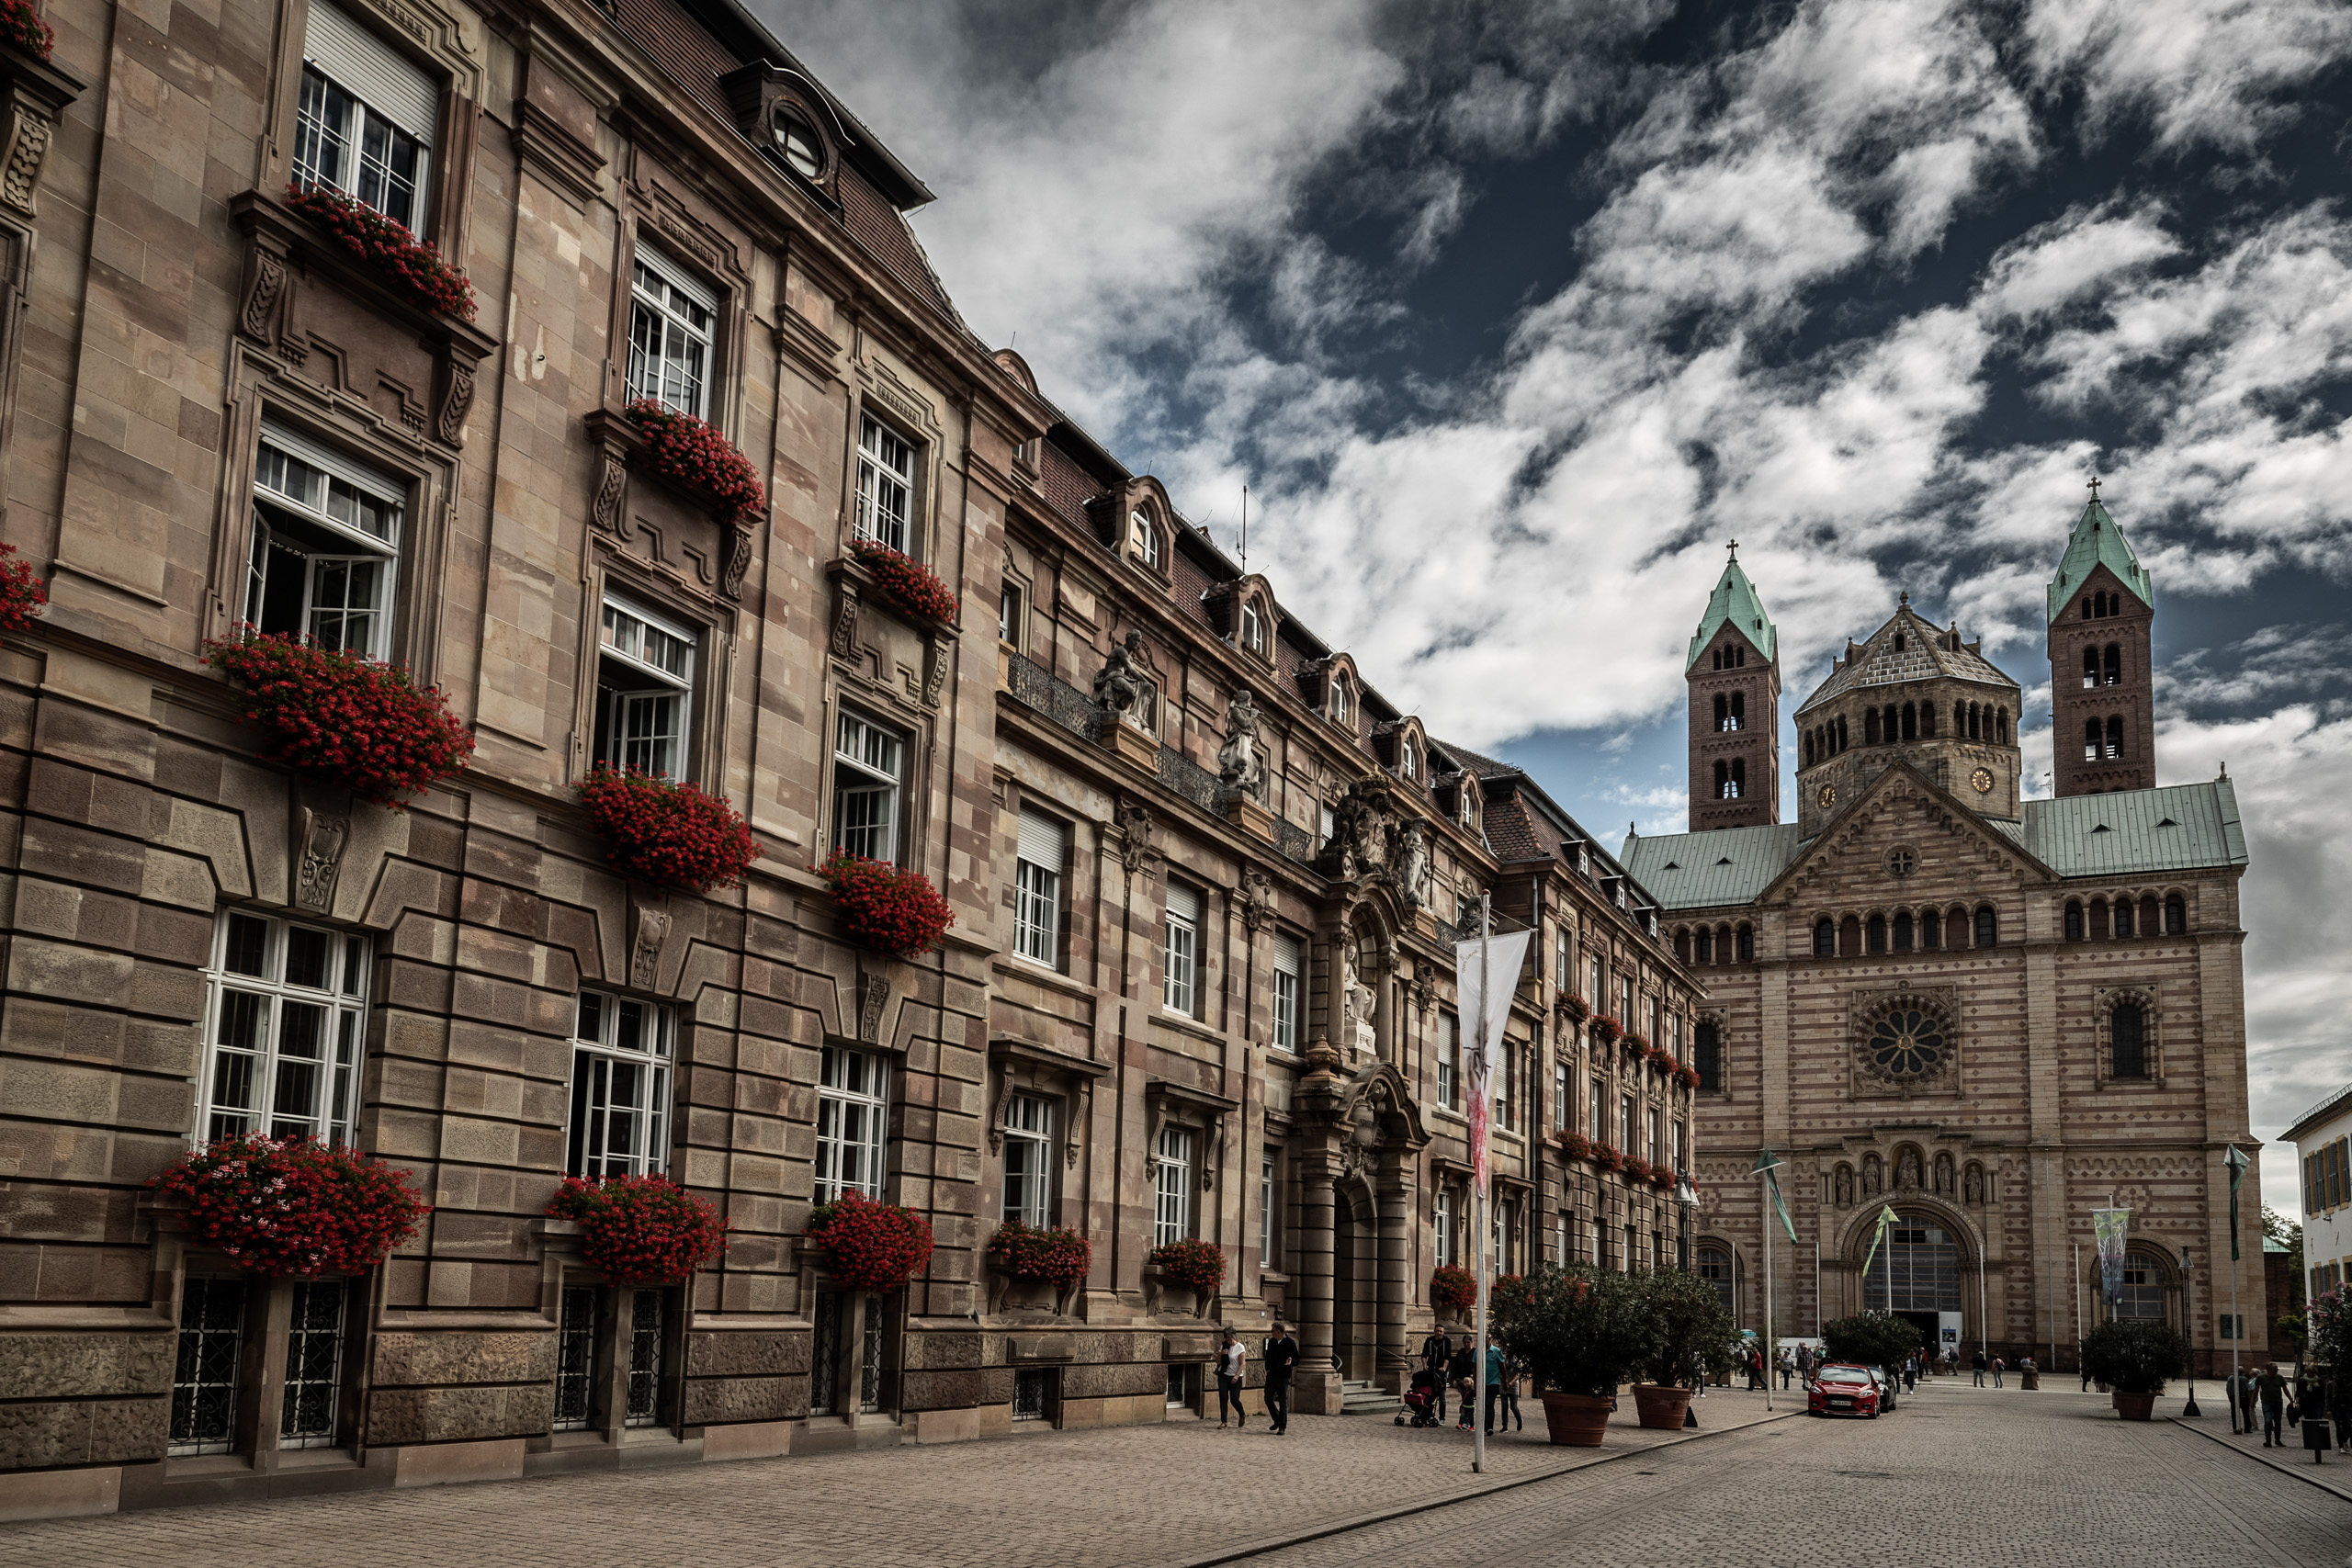 View of the Speyer Cathedral in the old town of Speyer, Palatinate